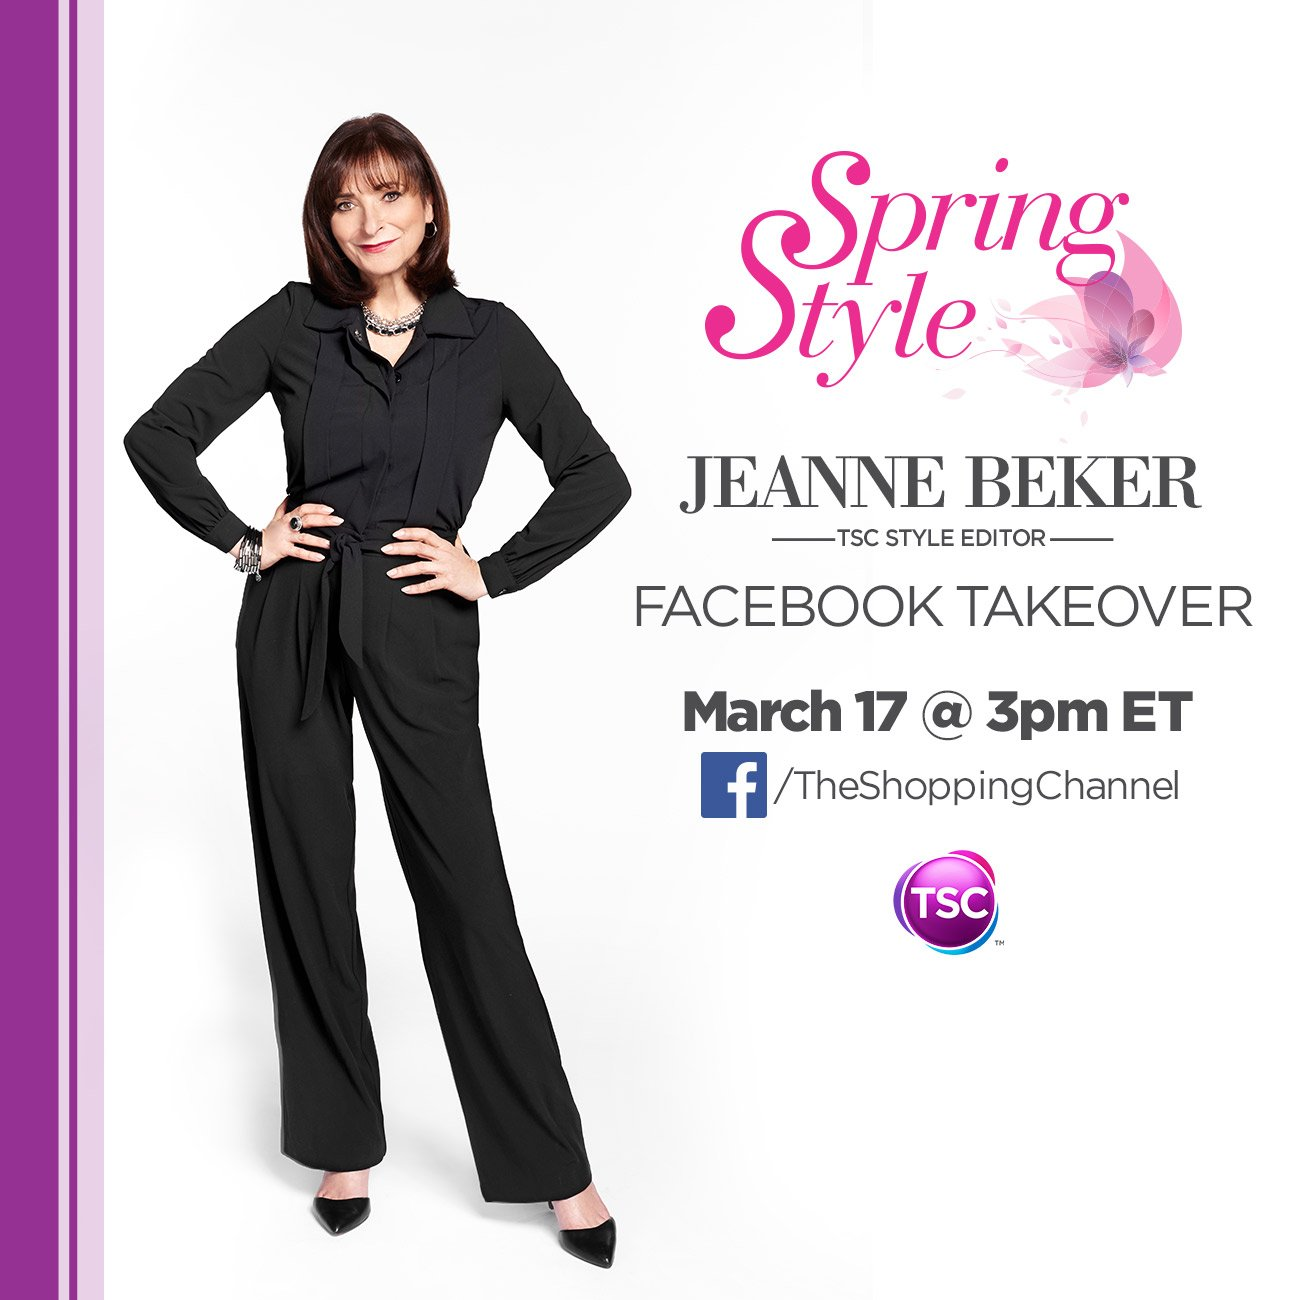 Mark your calendars! @Jeanne_Beker is taking over the @theShoppingChan #FacebookPage this Thurs at 3PM! #SpringStyle https://t.co/lme2GWt1wY